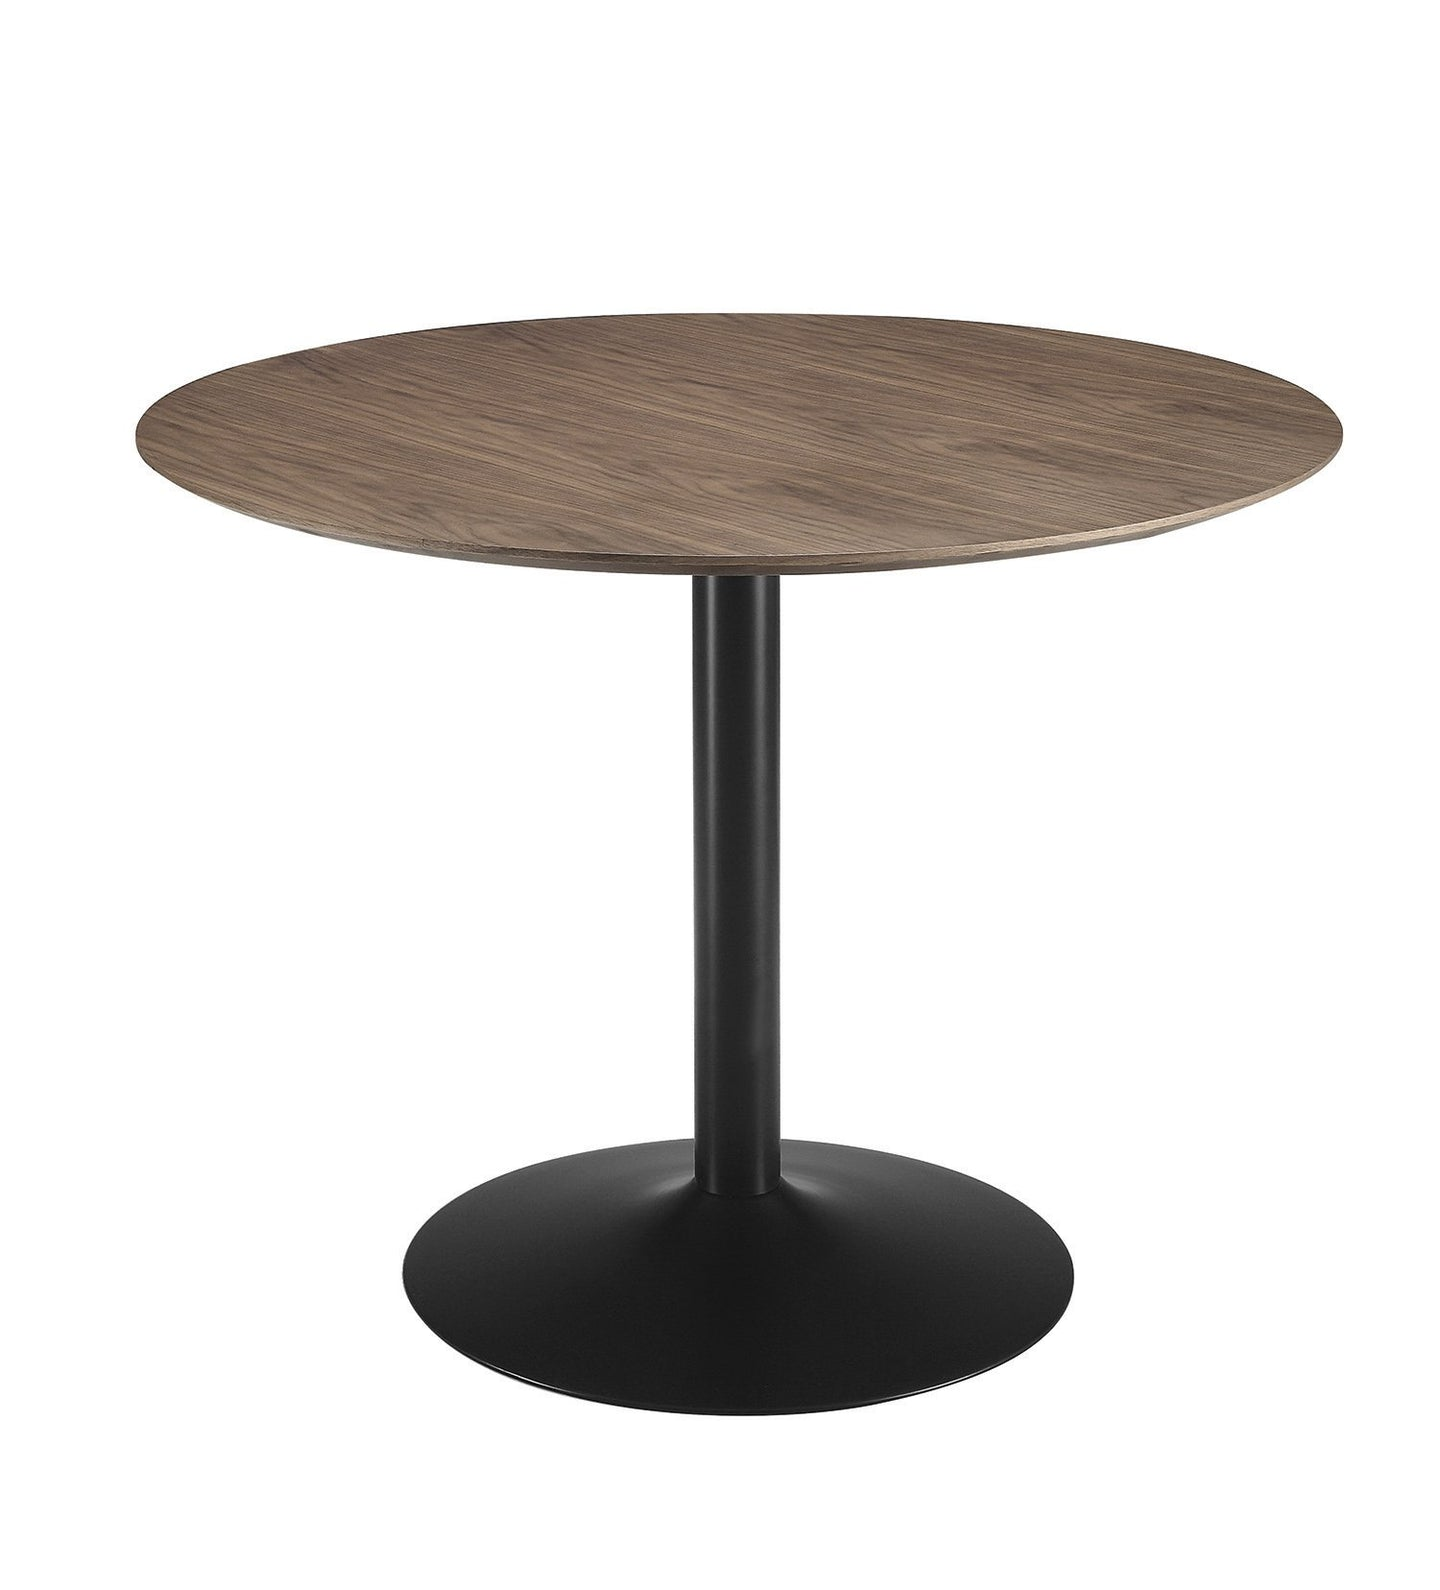 Montoya Walnut Wood Black Metal Round Dining Table